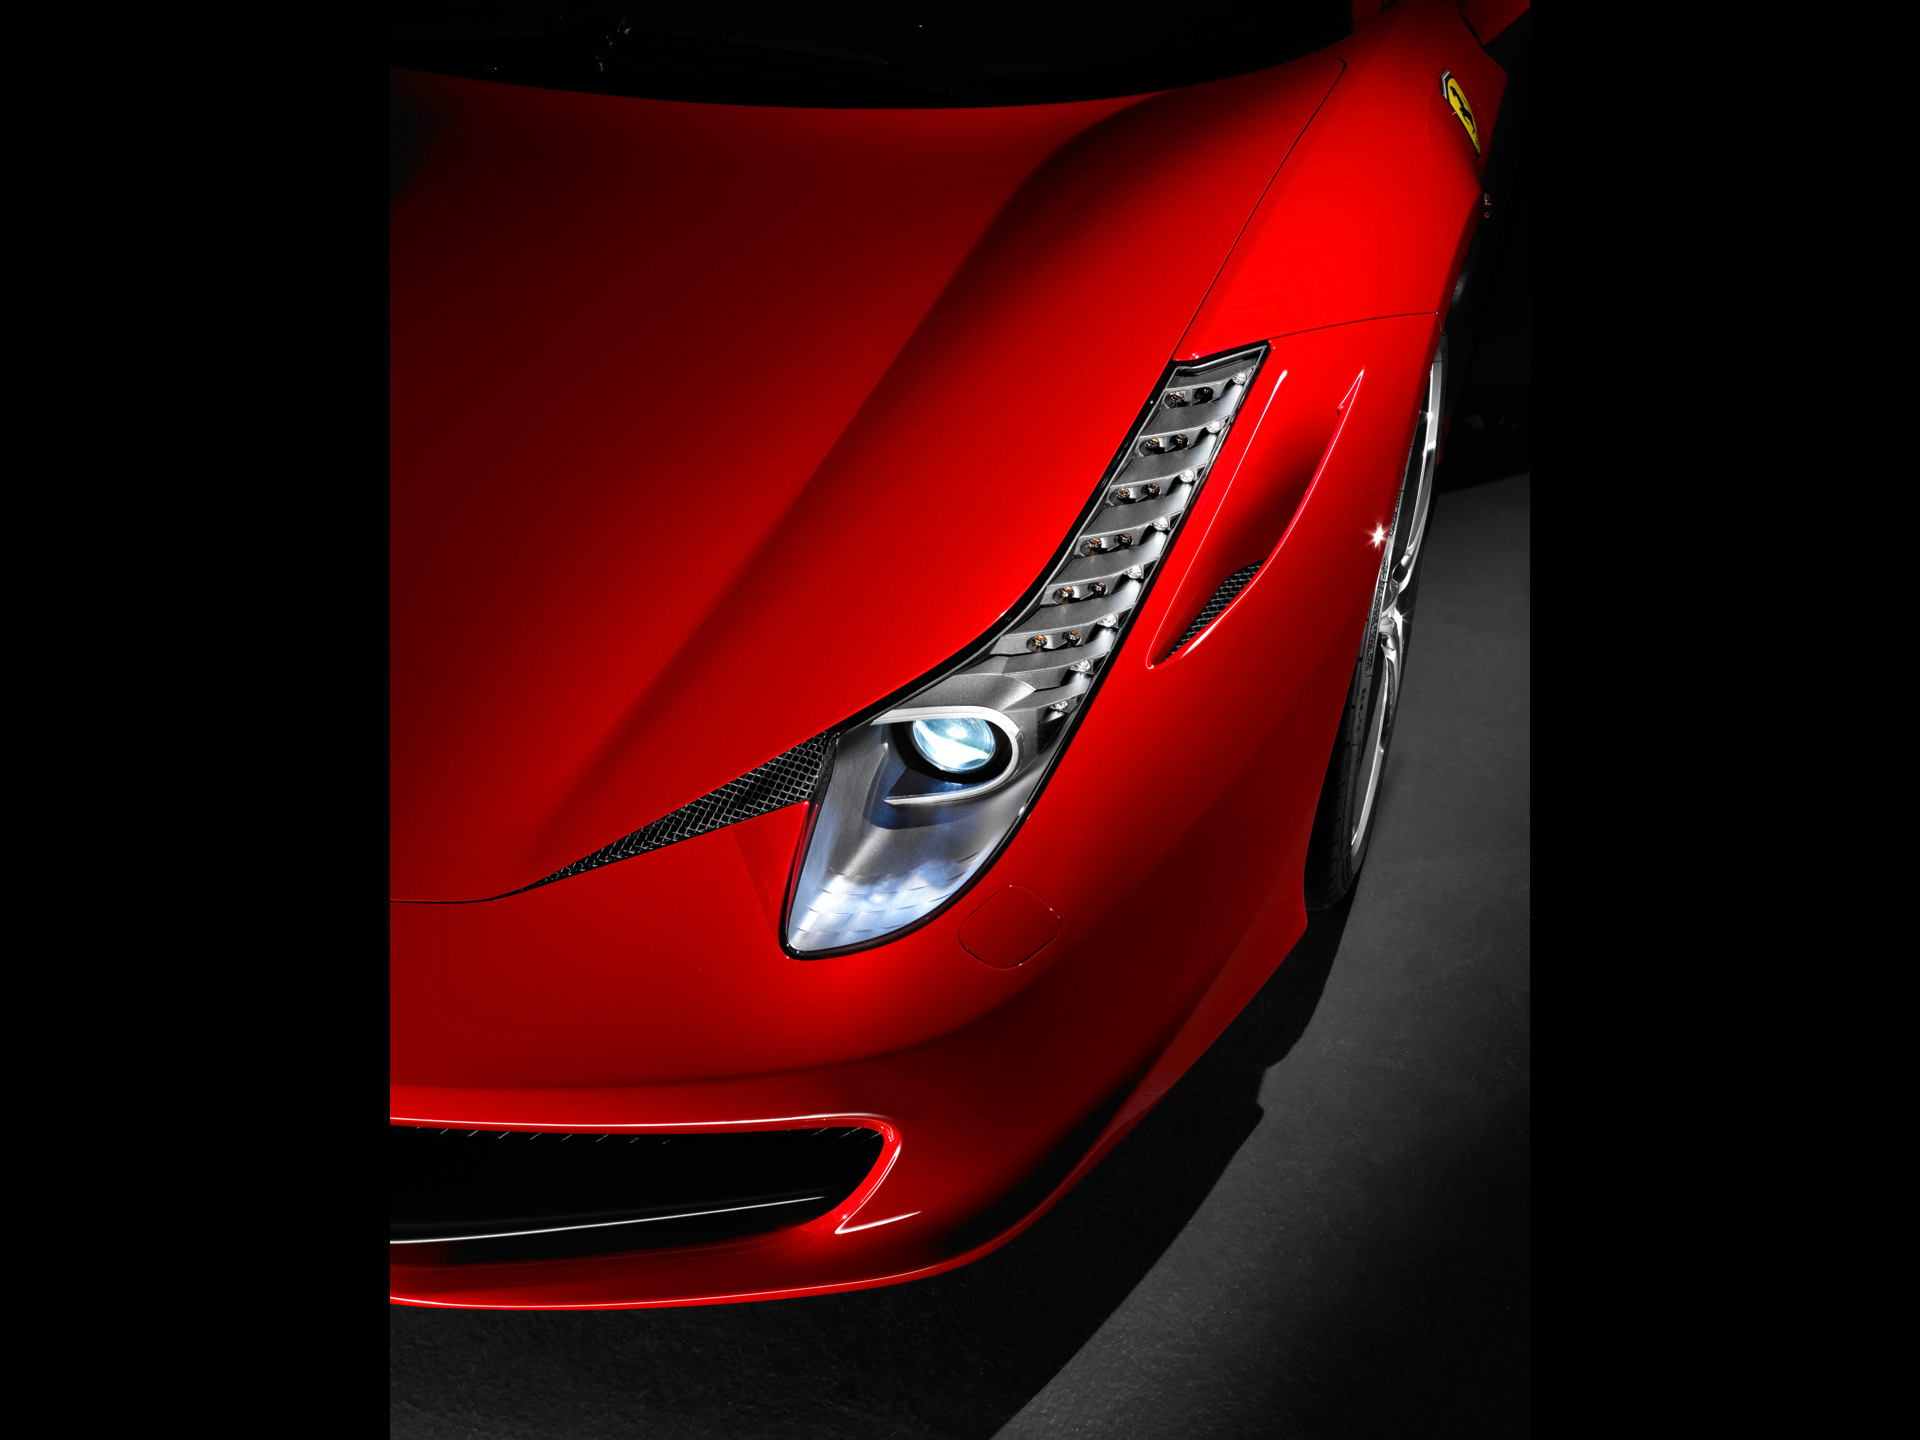 Ferrari 458 Italia Award Winnig Sportcar 2013-front-Illuminated-light - SportsCars20